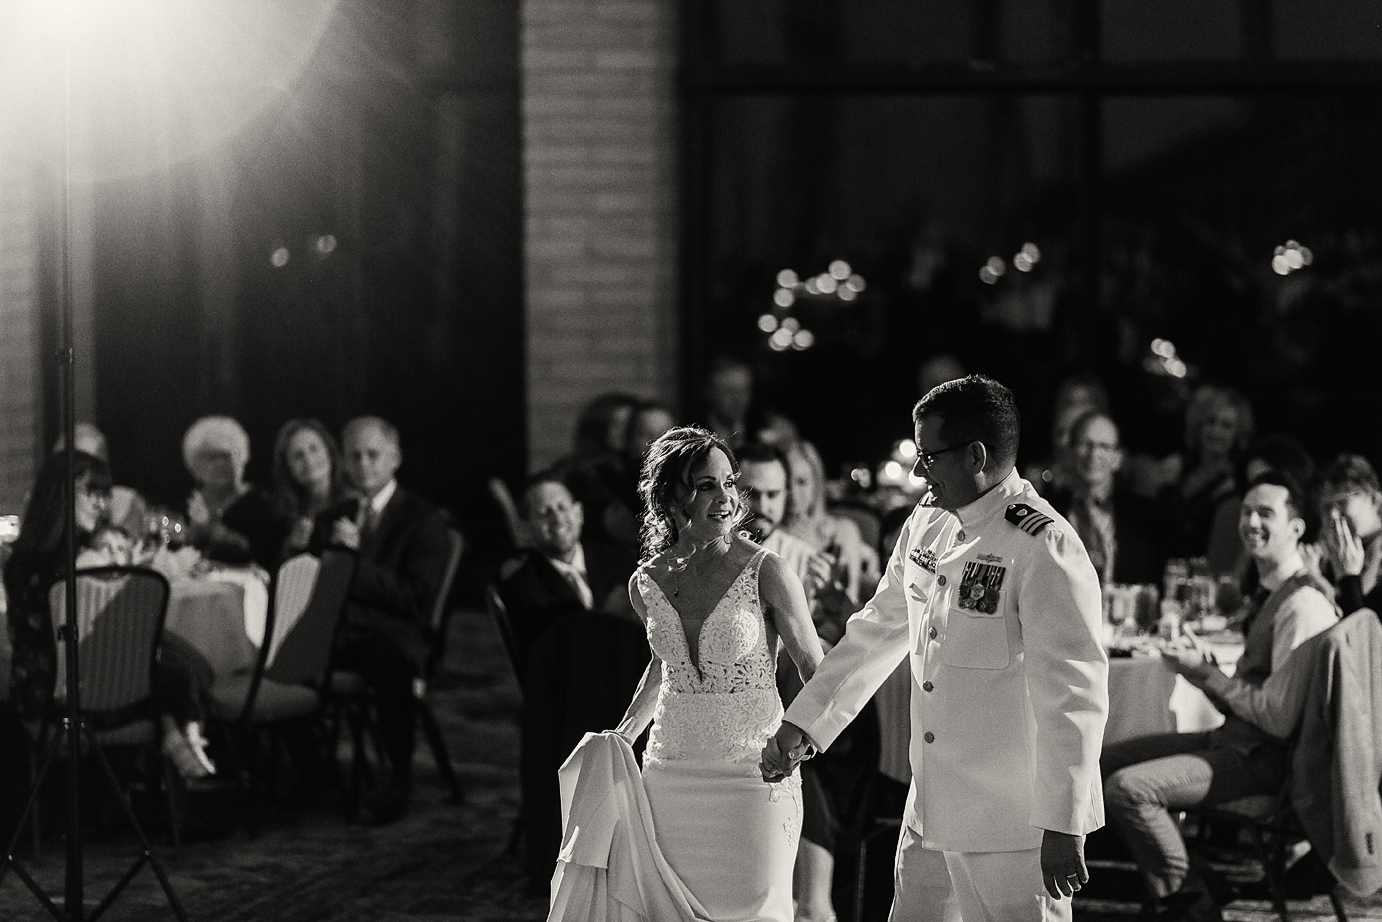 Dallas Wedding photographer Las Colinas Country Club bride groom first dance Kate Marie Portraiture 2.png